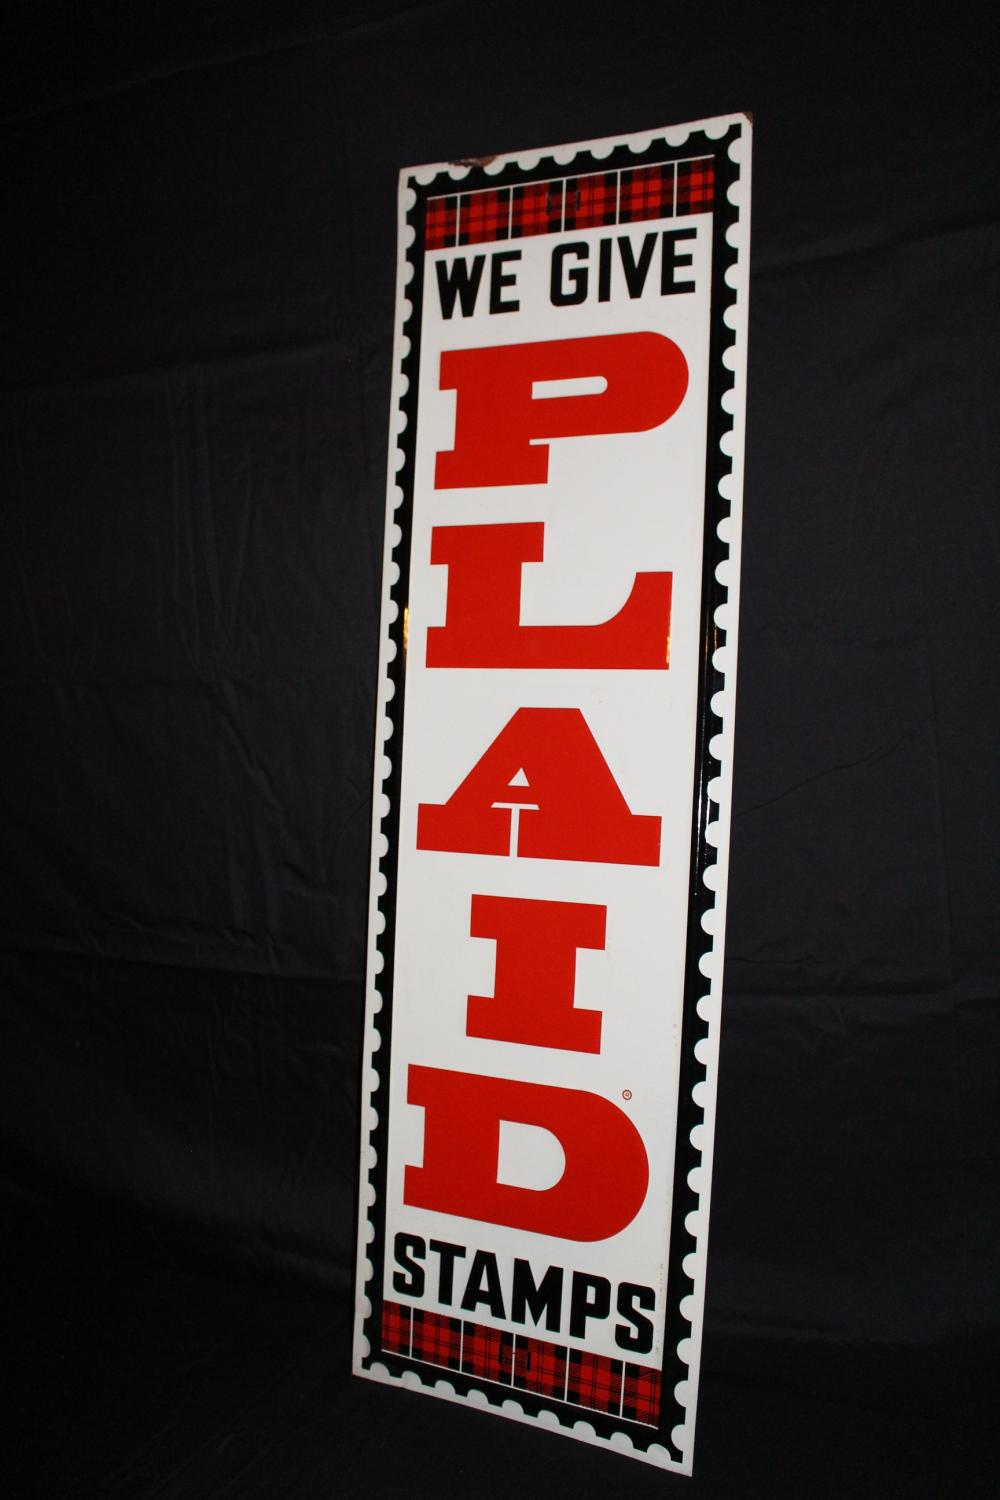 WE GIVE PLAID STAMPS TIN SIGN